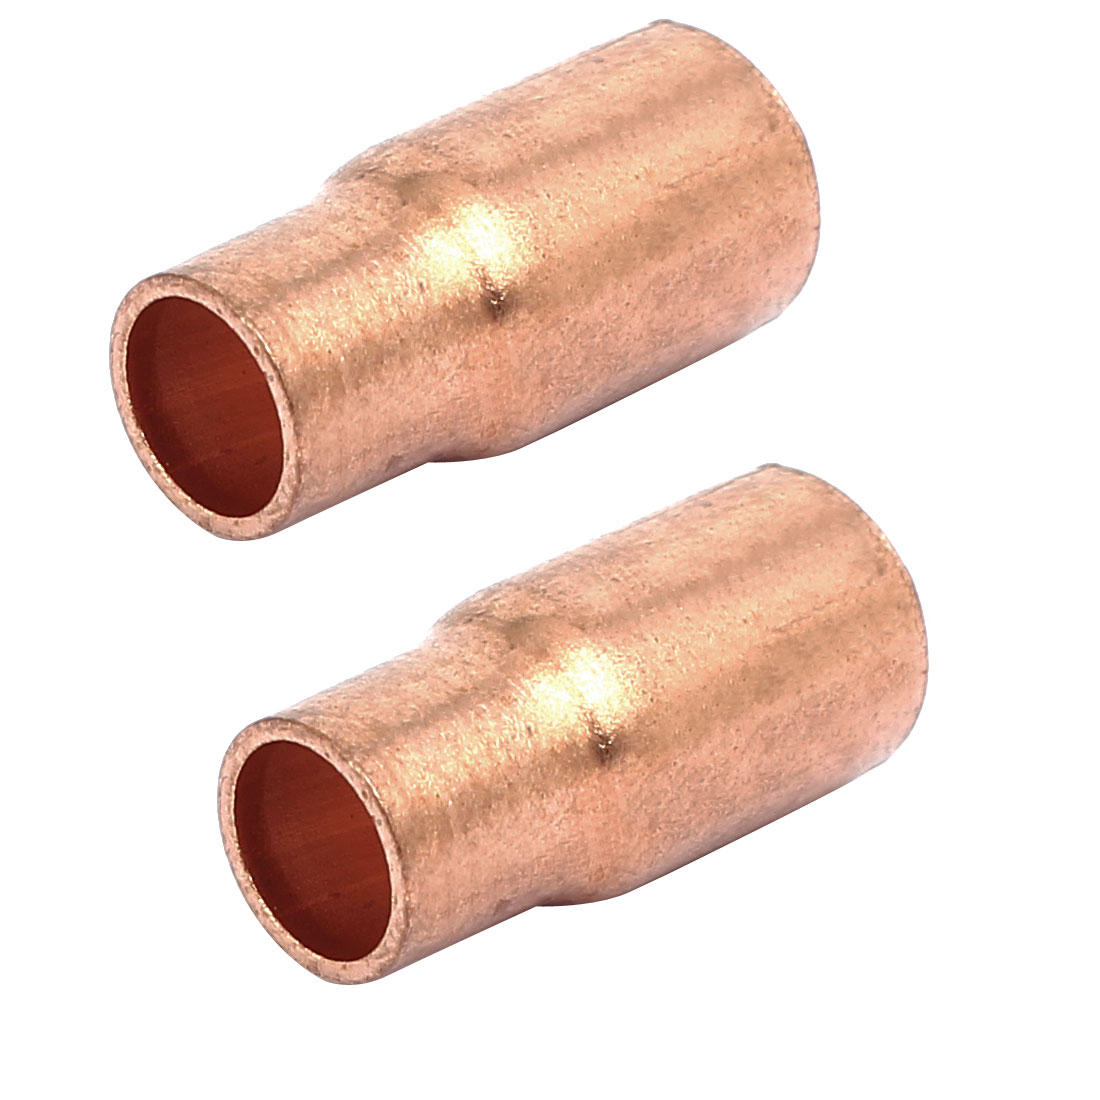 8mmx6.35mm Tube Air Conditioner Copper Reducer Straight Fittings 2pcs